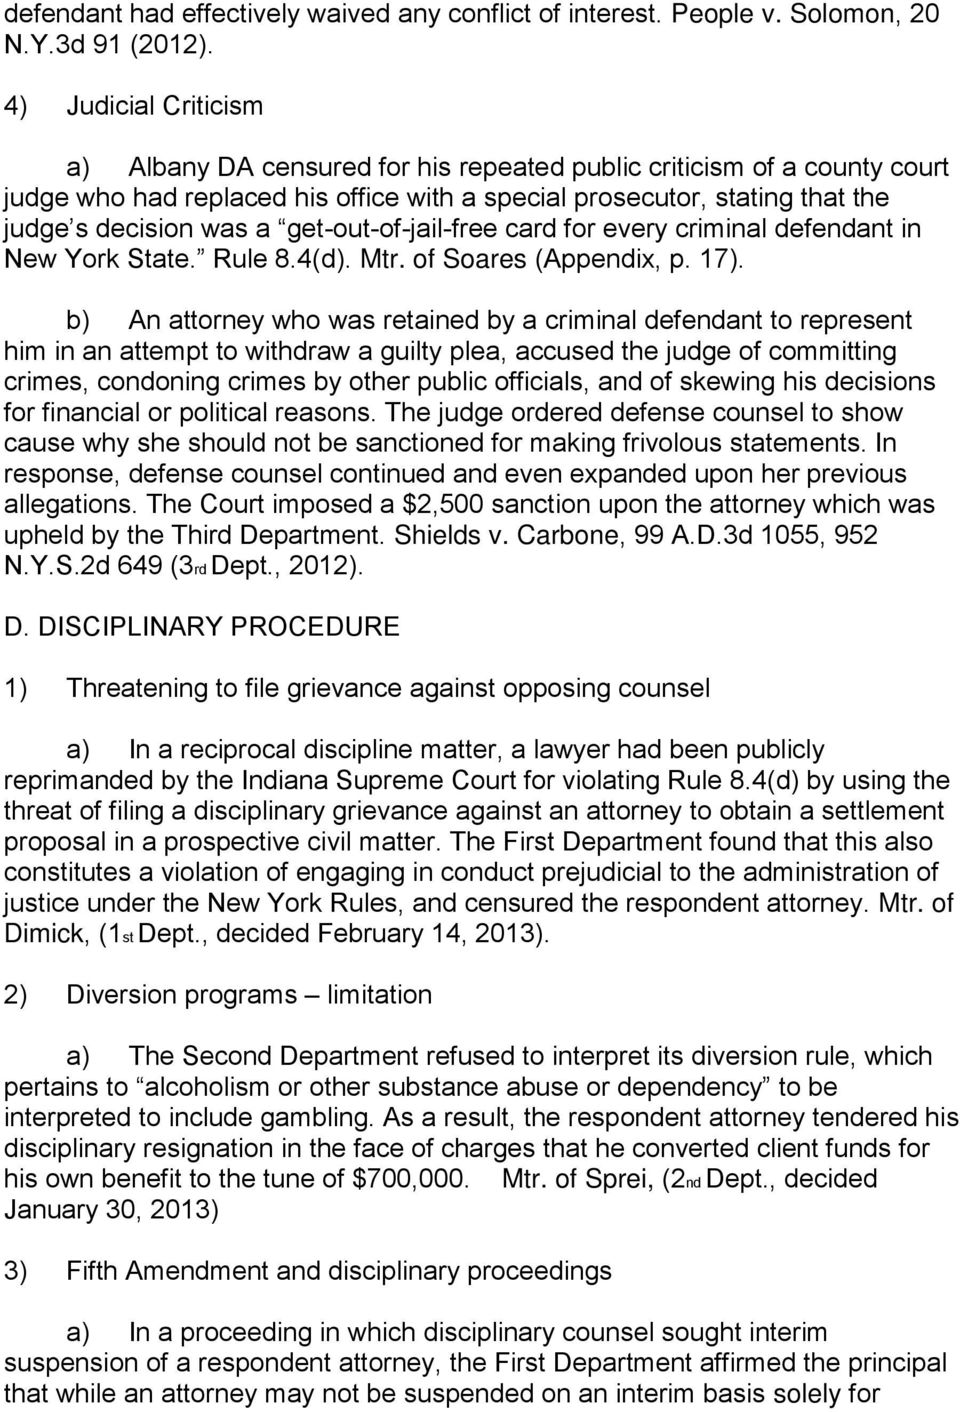 get-out-of-jail-free card for every criminal defendant in New York State. Rule 8.4(d). Mtr. of Soares (Appendix, p. 17).